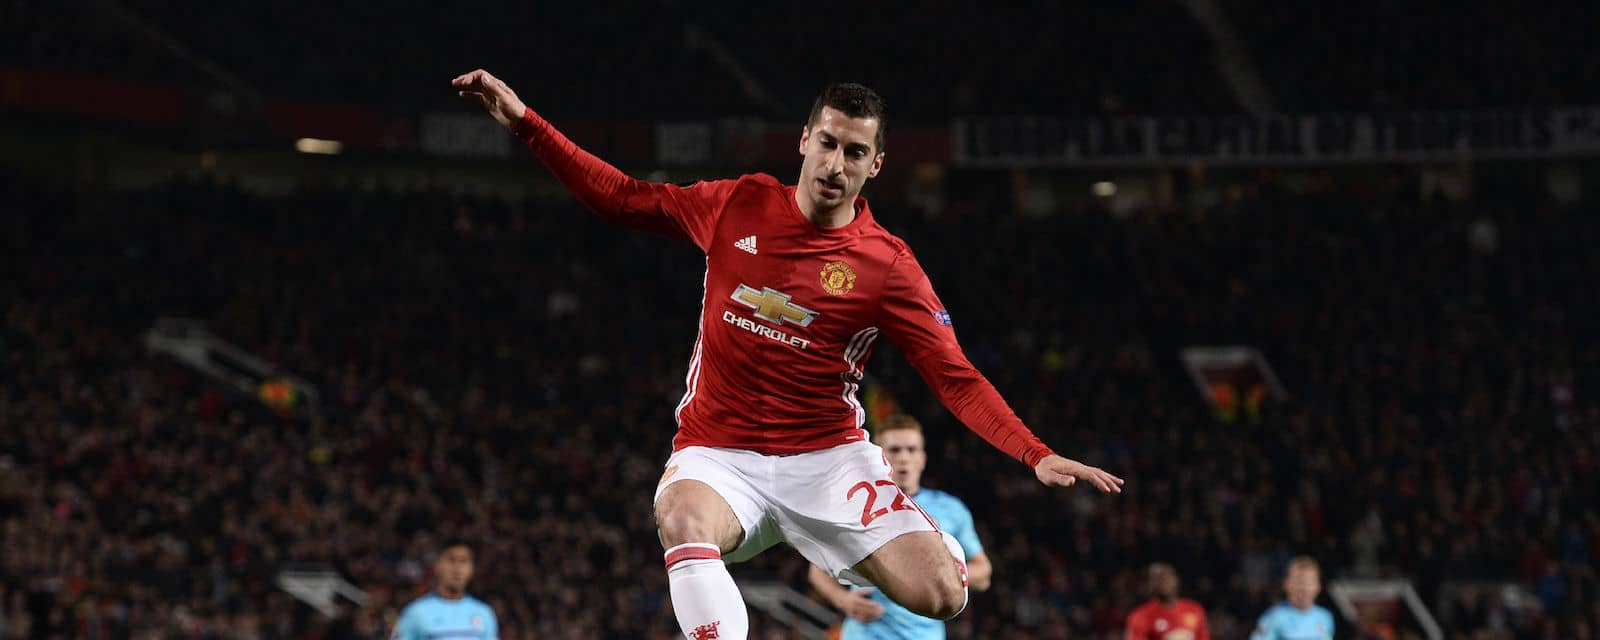 Man United fans delighted with Henrikh Mkhitaryan's performance against Feyenoord